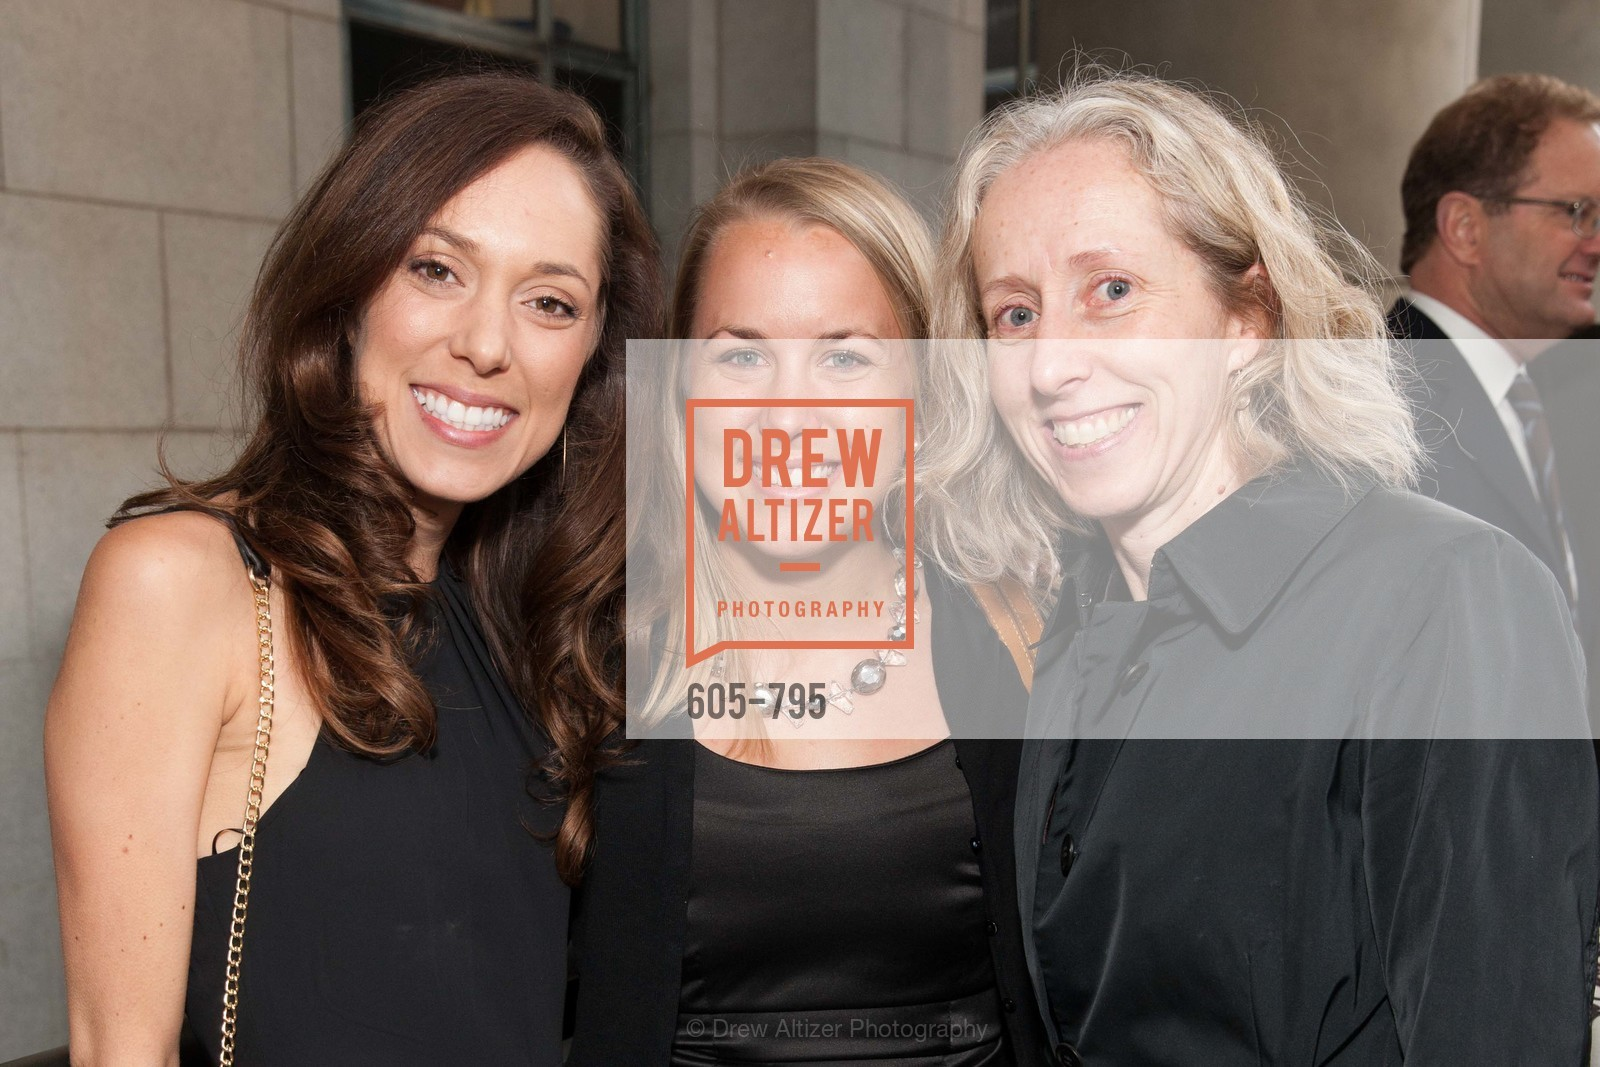 Hannah Lindball, Christina Fink, Denise Carney, COMPASS FAMILY SERVICES Annual Spring Benefit:  Every Family Needs A Home, US, April 23rd, 2015,Drew Altizer, Drew Altizer Photography, full-service event agency, private events, San Francisco photographer, photographer California